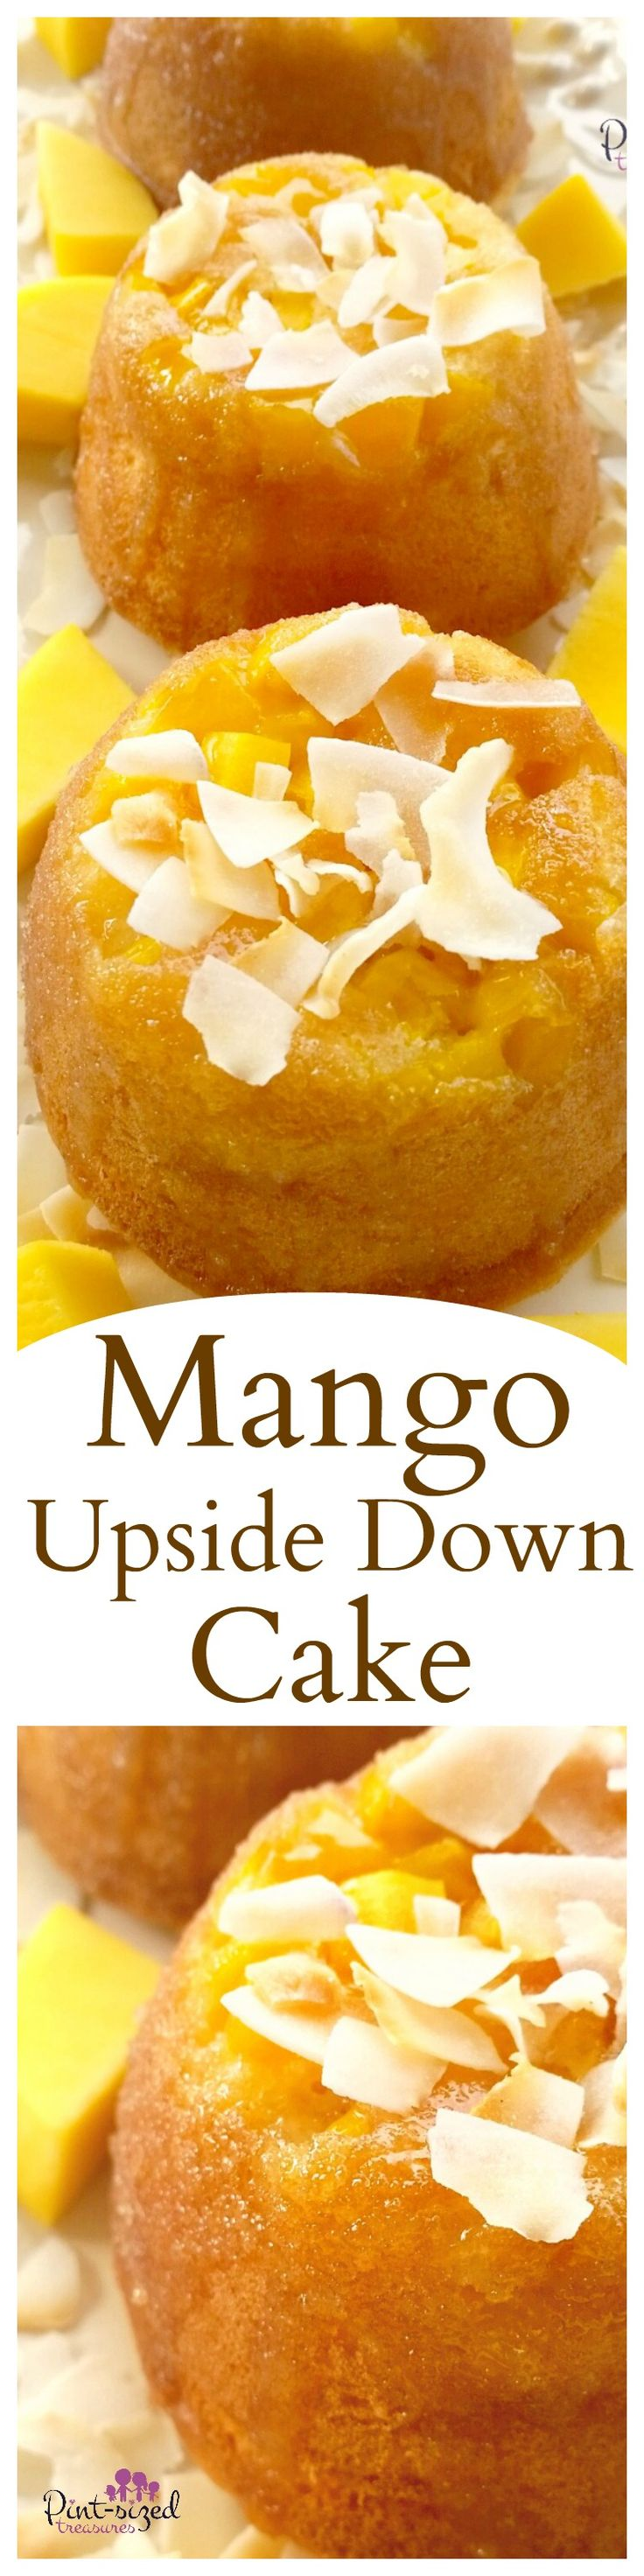 Gorgeous mango upside down cakes are topped with a homemade syrup that adds an additional touch of sweetness to this super-moist, rich, fruity cake. And don't forget the toasted coconuts that are sprinkled throughout the cake and on top! Enjoy this super-easy version of oh-so-yummy upside down cake!